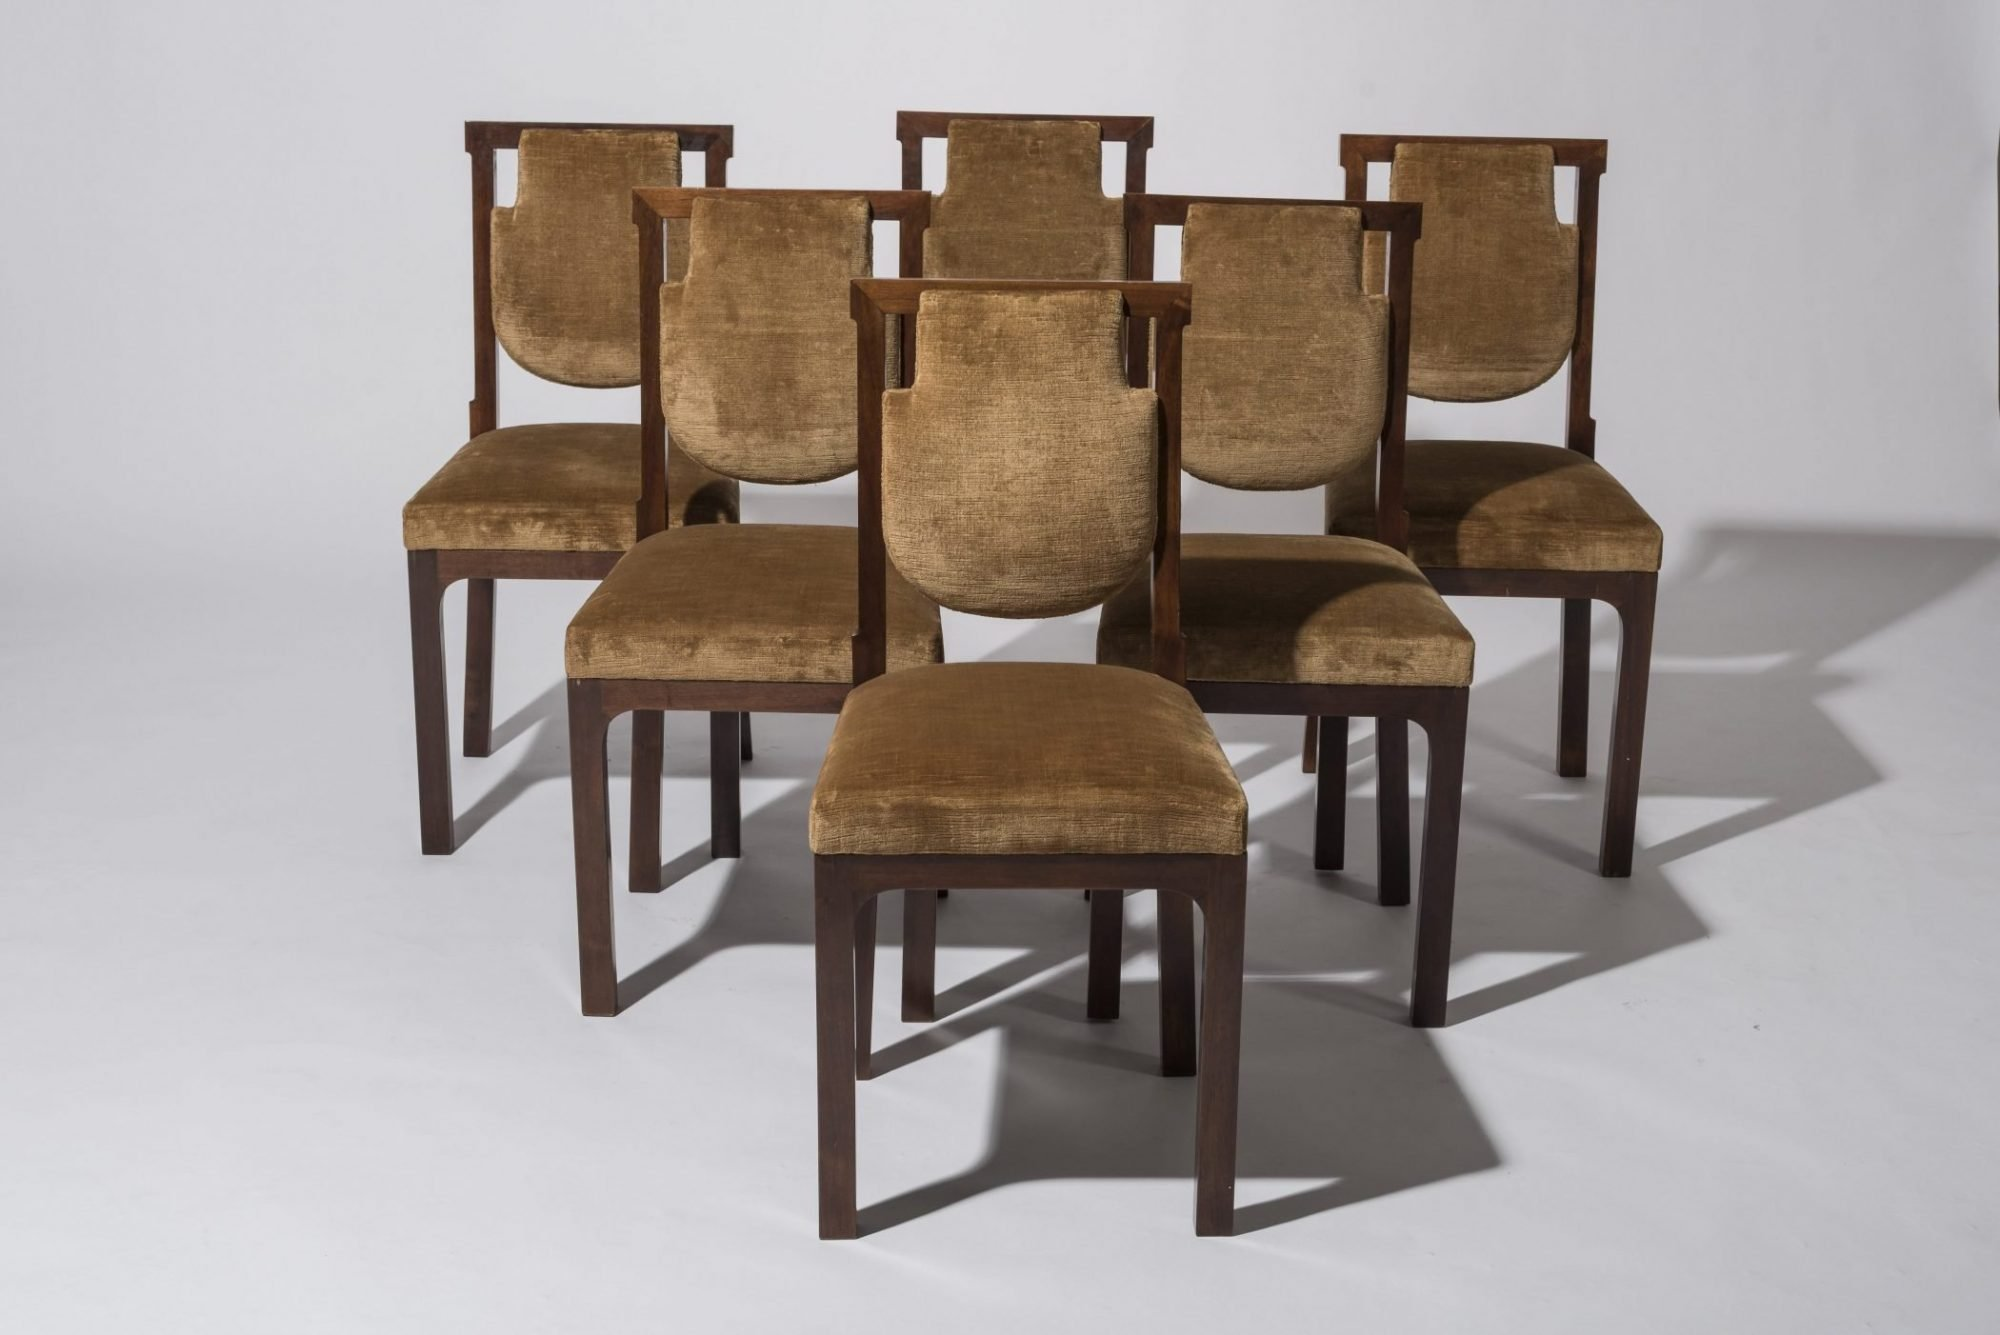 Alessandro Mendini and Mario Brunati |   Set of 12 chairs